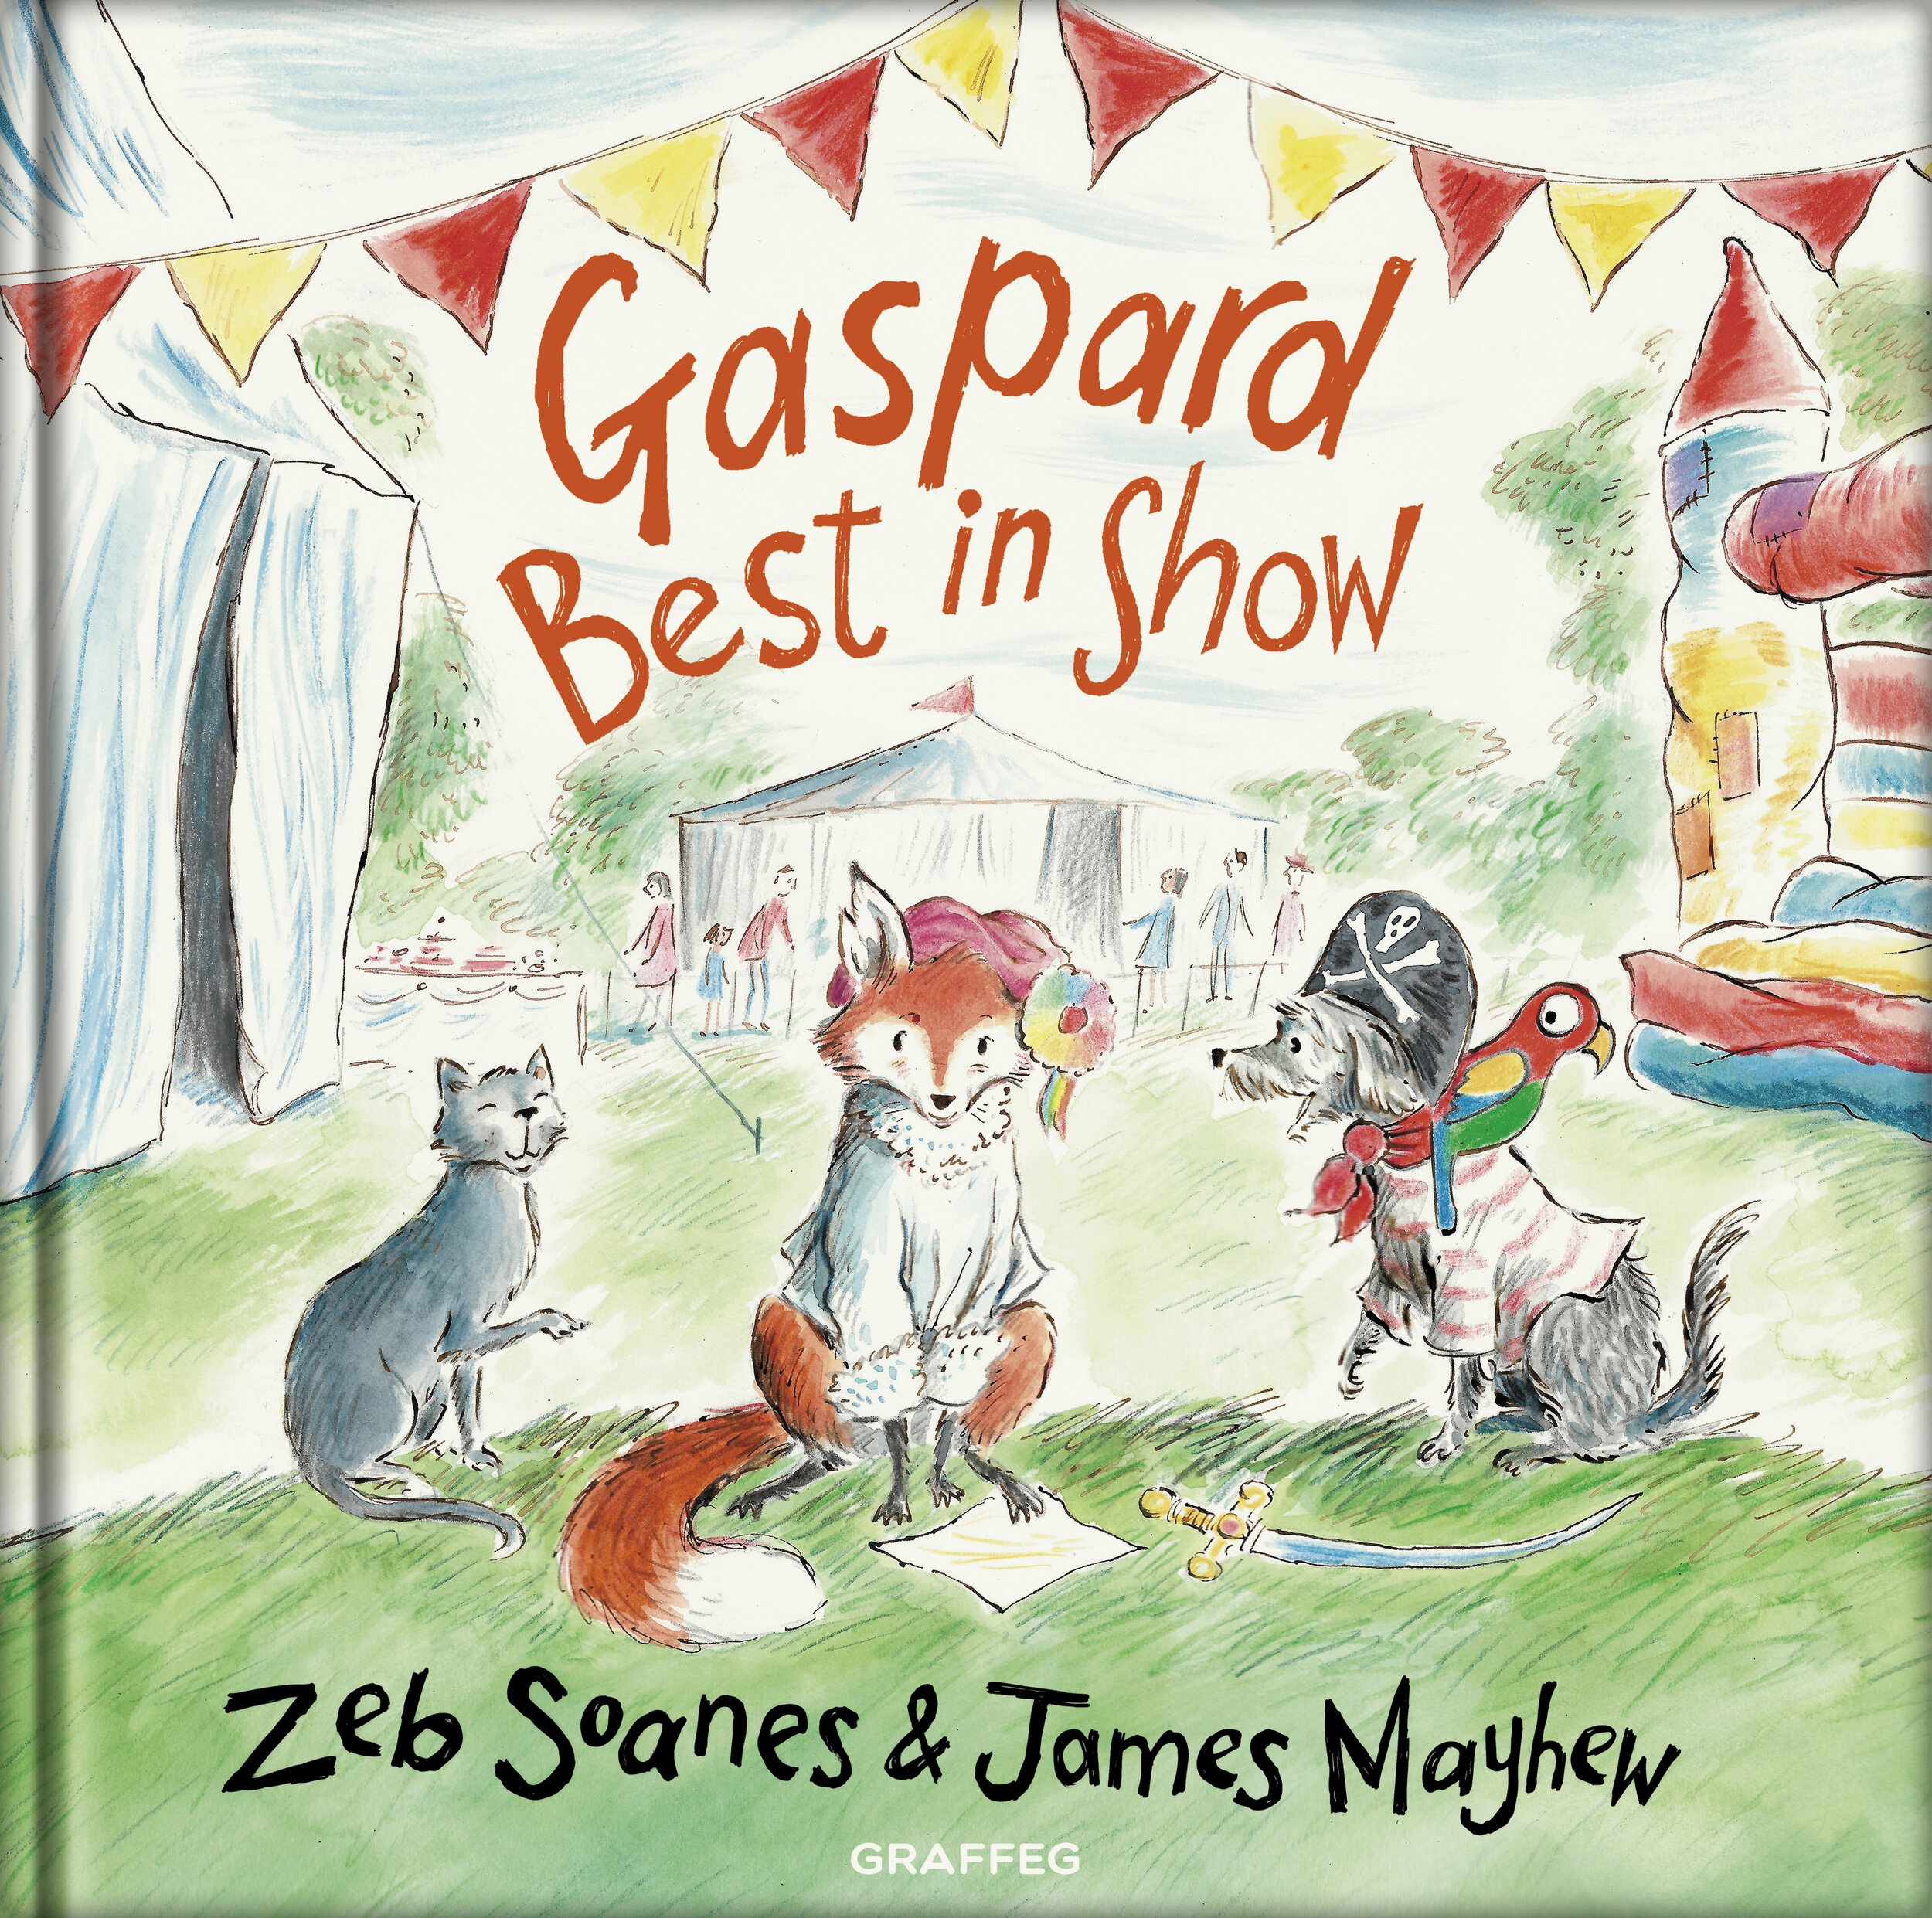 Gaspard Best in Show, published by Graffeg, August 2019